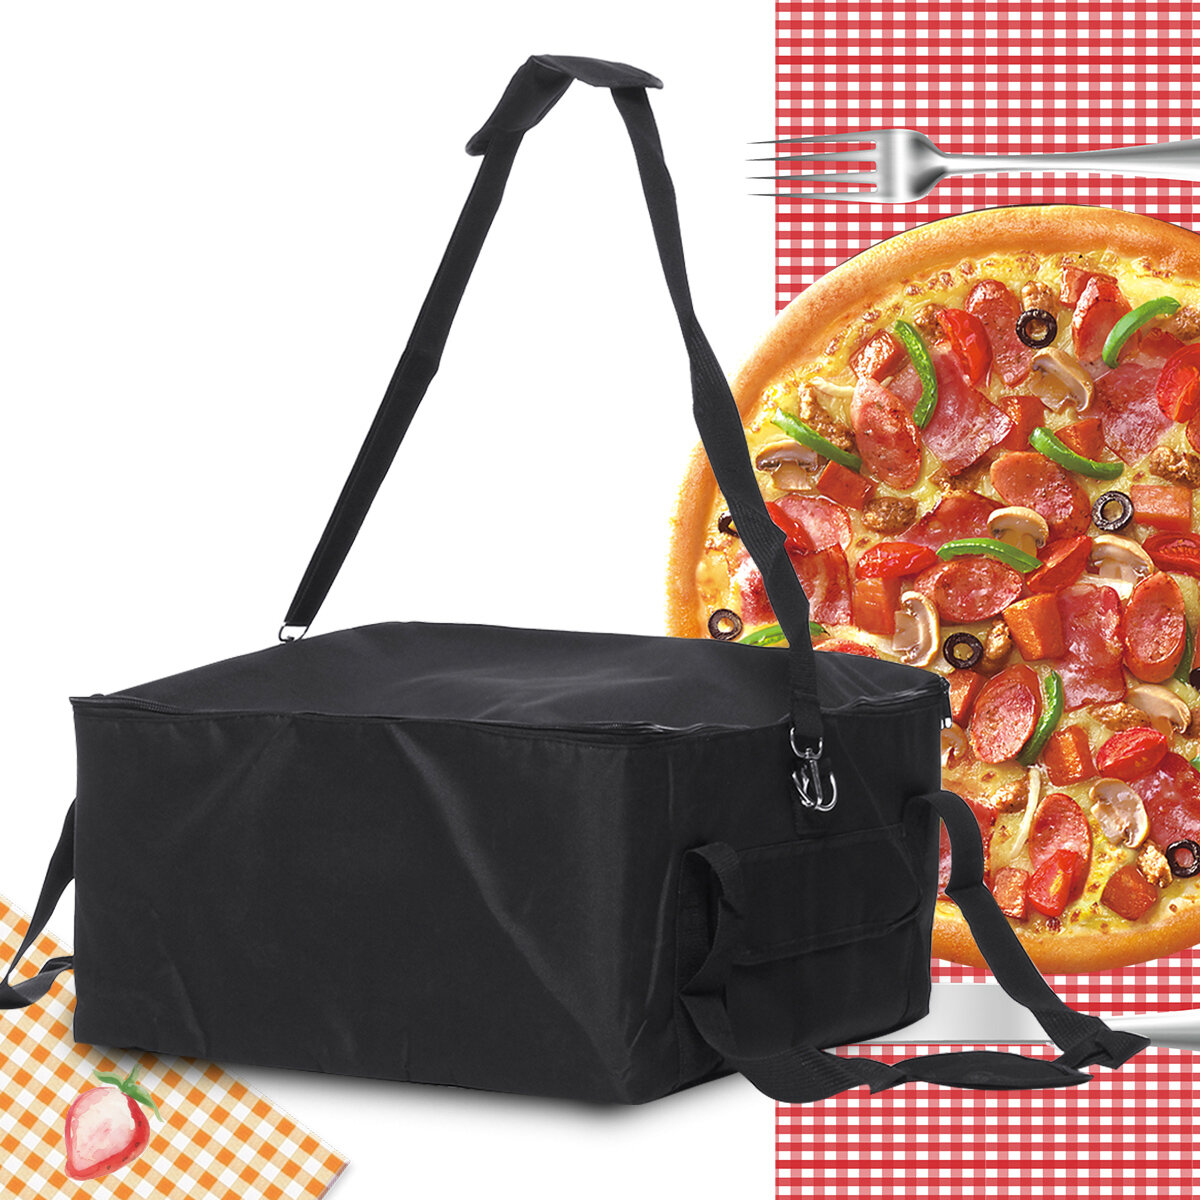 16'' Pizza Food Delivery Bag Insulated Thermal Nylon Holds Bag Aluminium Foil Packing Bag